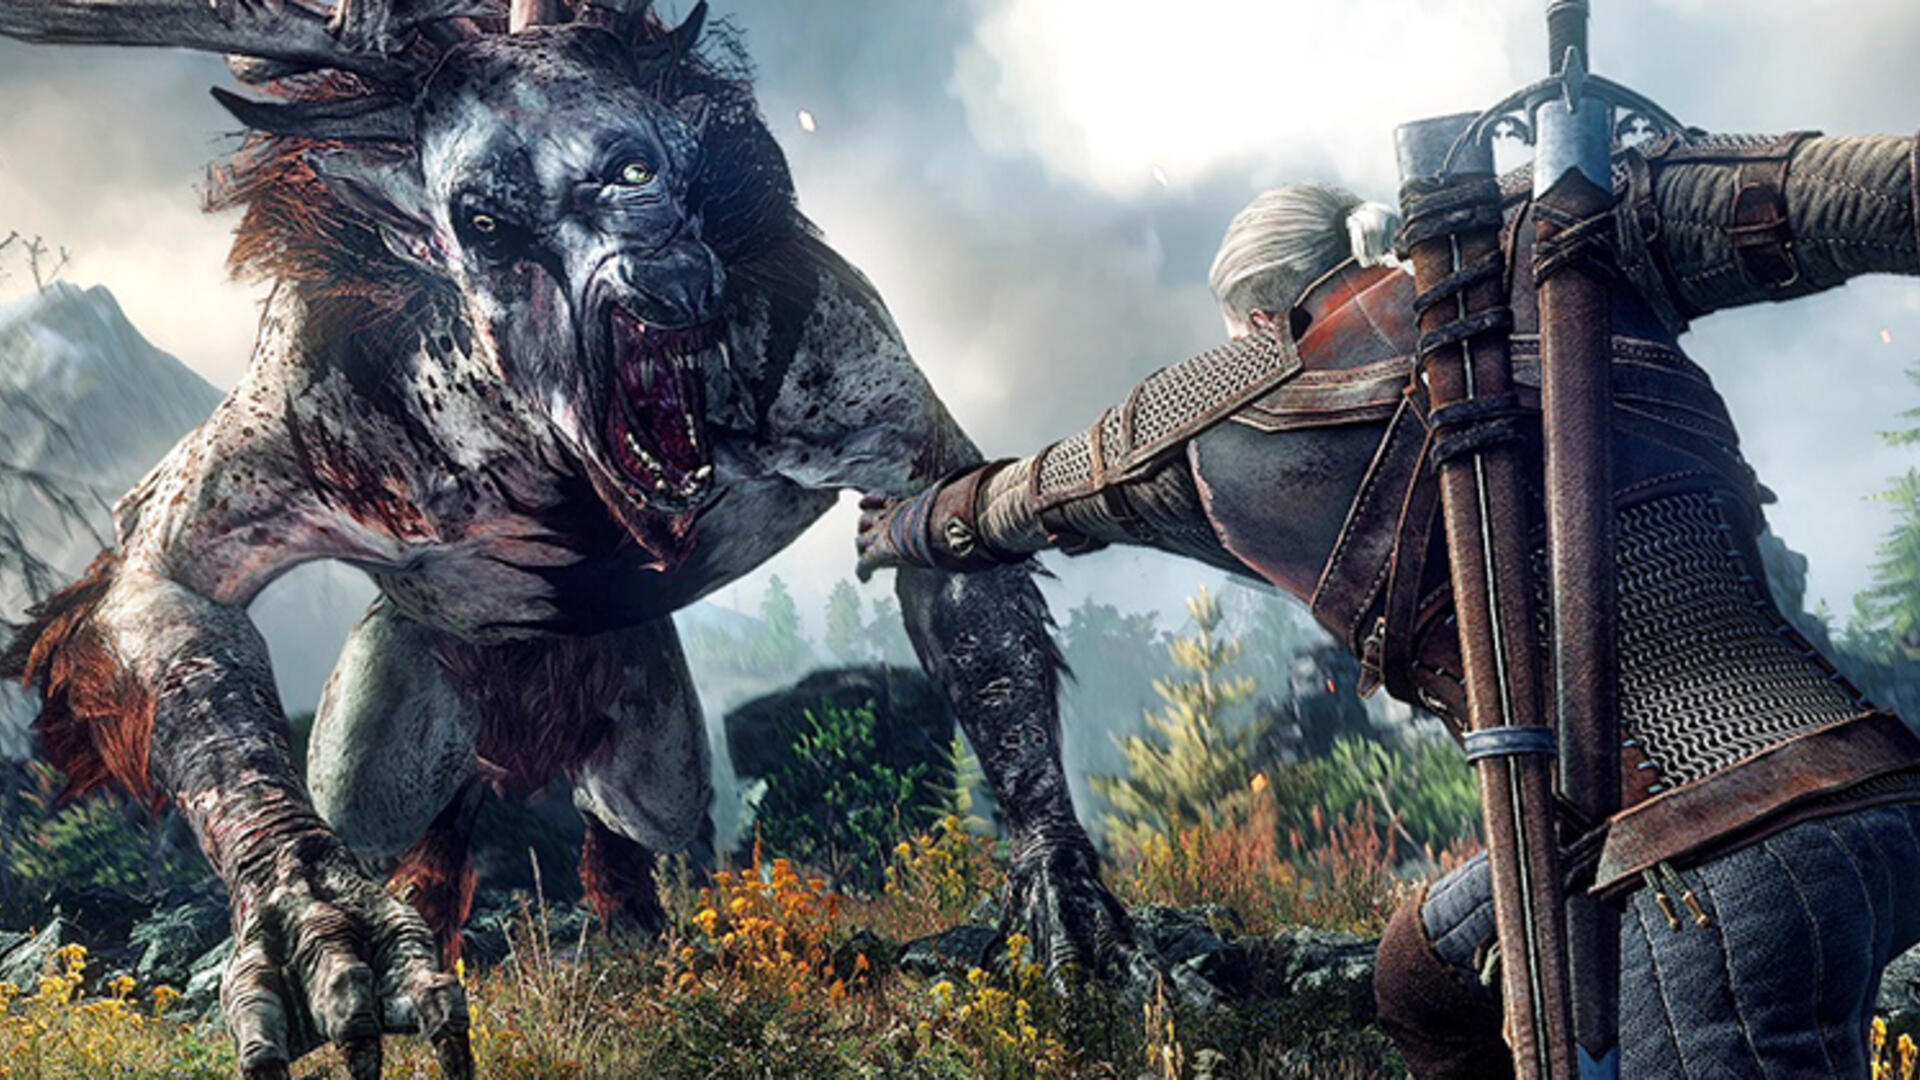 Why Hunting Games like Witcher 3 and Far Cry Primal Have Become so Popular